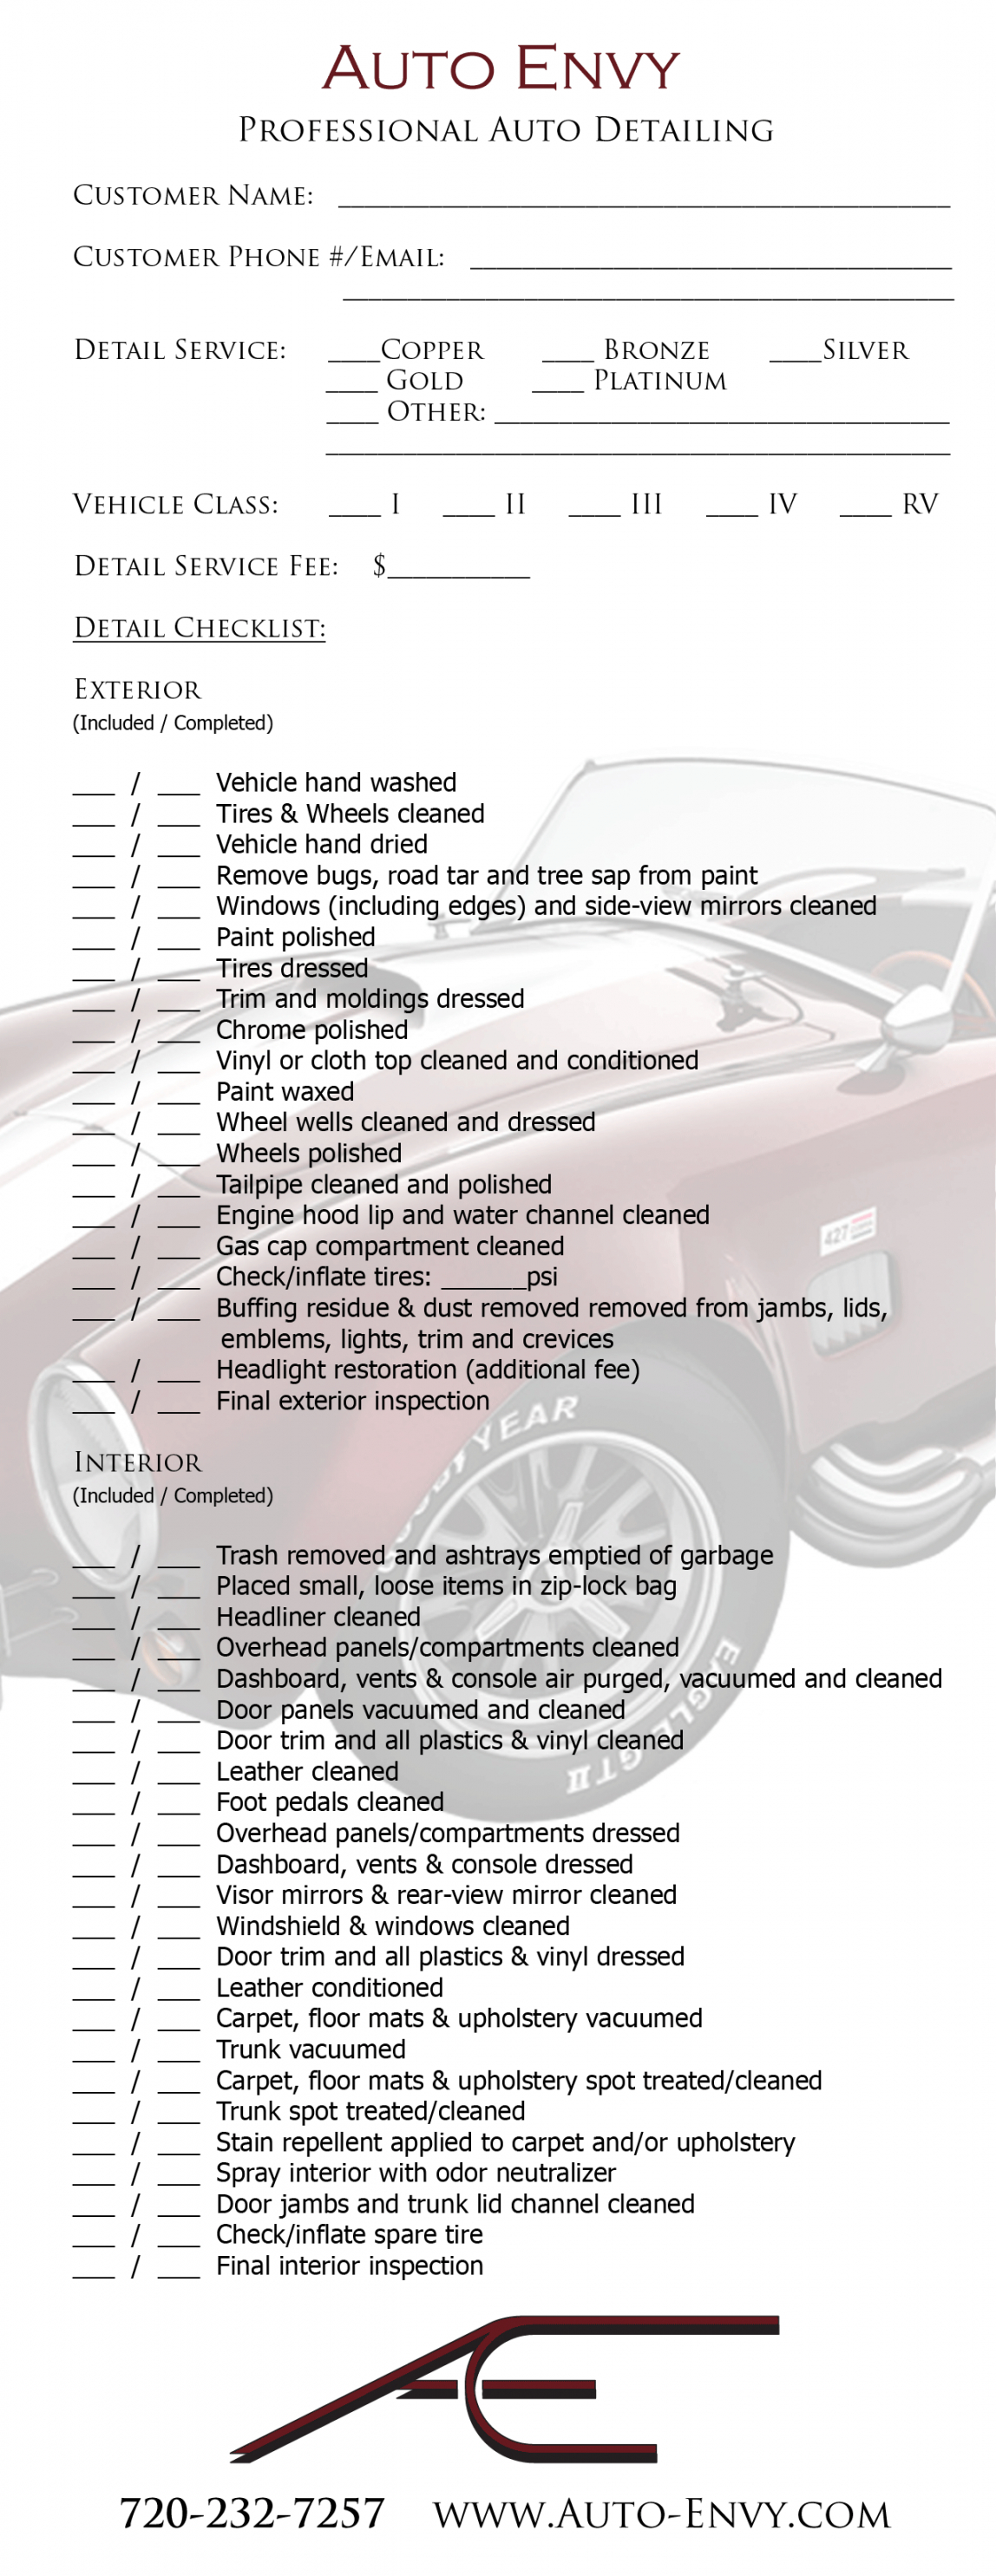 Auto Detailing Wikipedia Car Checklist Pdf Professional Inspection